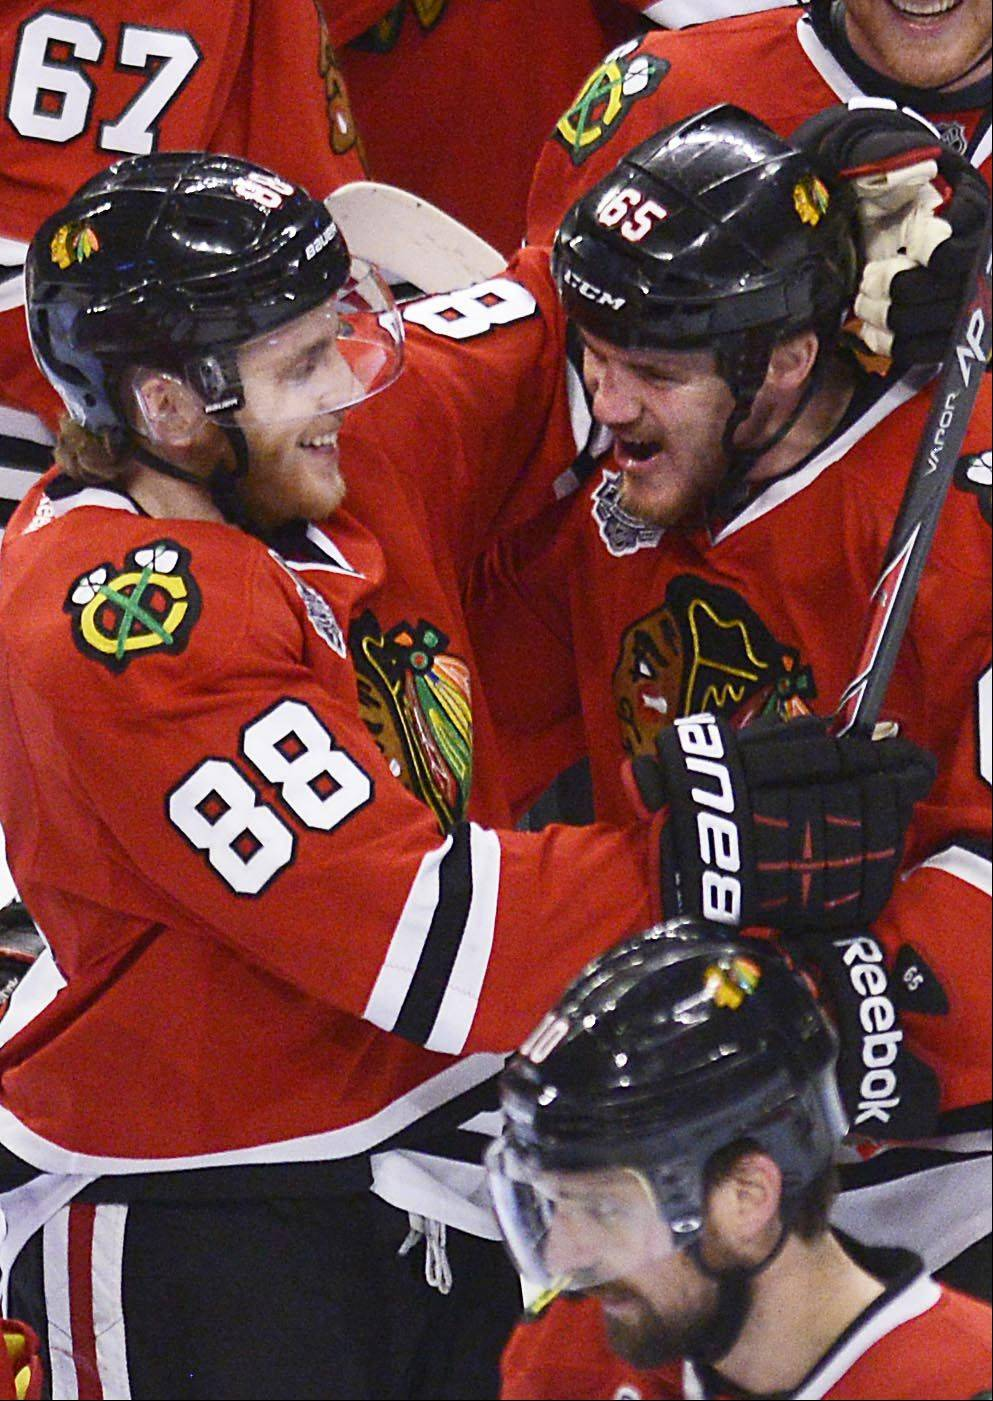 John Starks/jstarks@dailyherald.com Chicago Blackhawks center Andrew Shaw is hugged by teammate Patrick Kane after his game winning goal in the third overtime of Game 1 of the Stanley Cup Finals Wednesday at the Untied Center in Chicago.